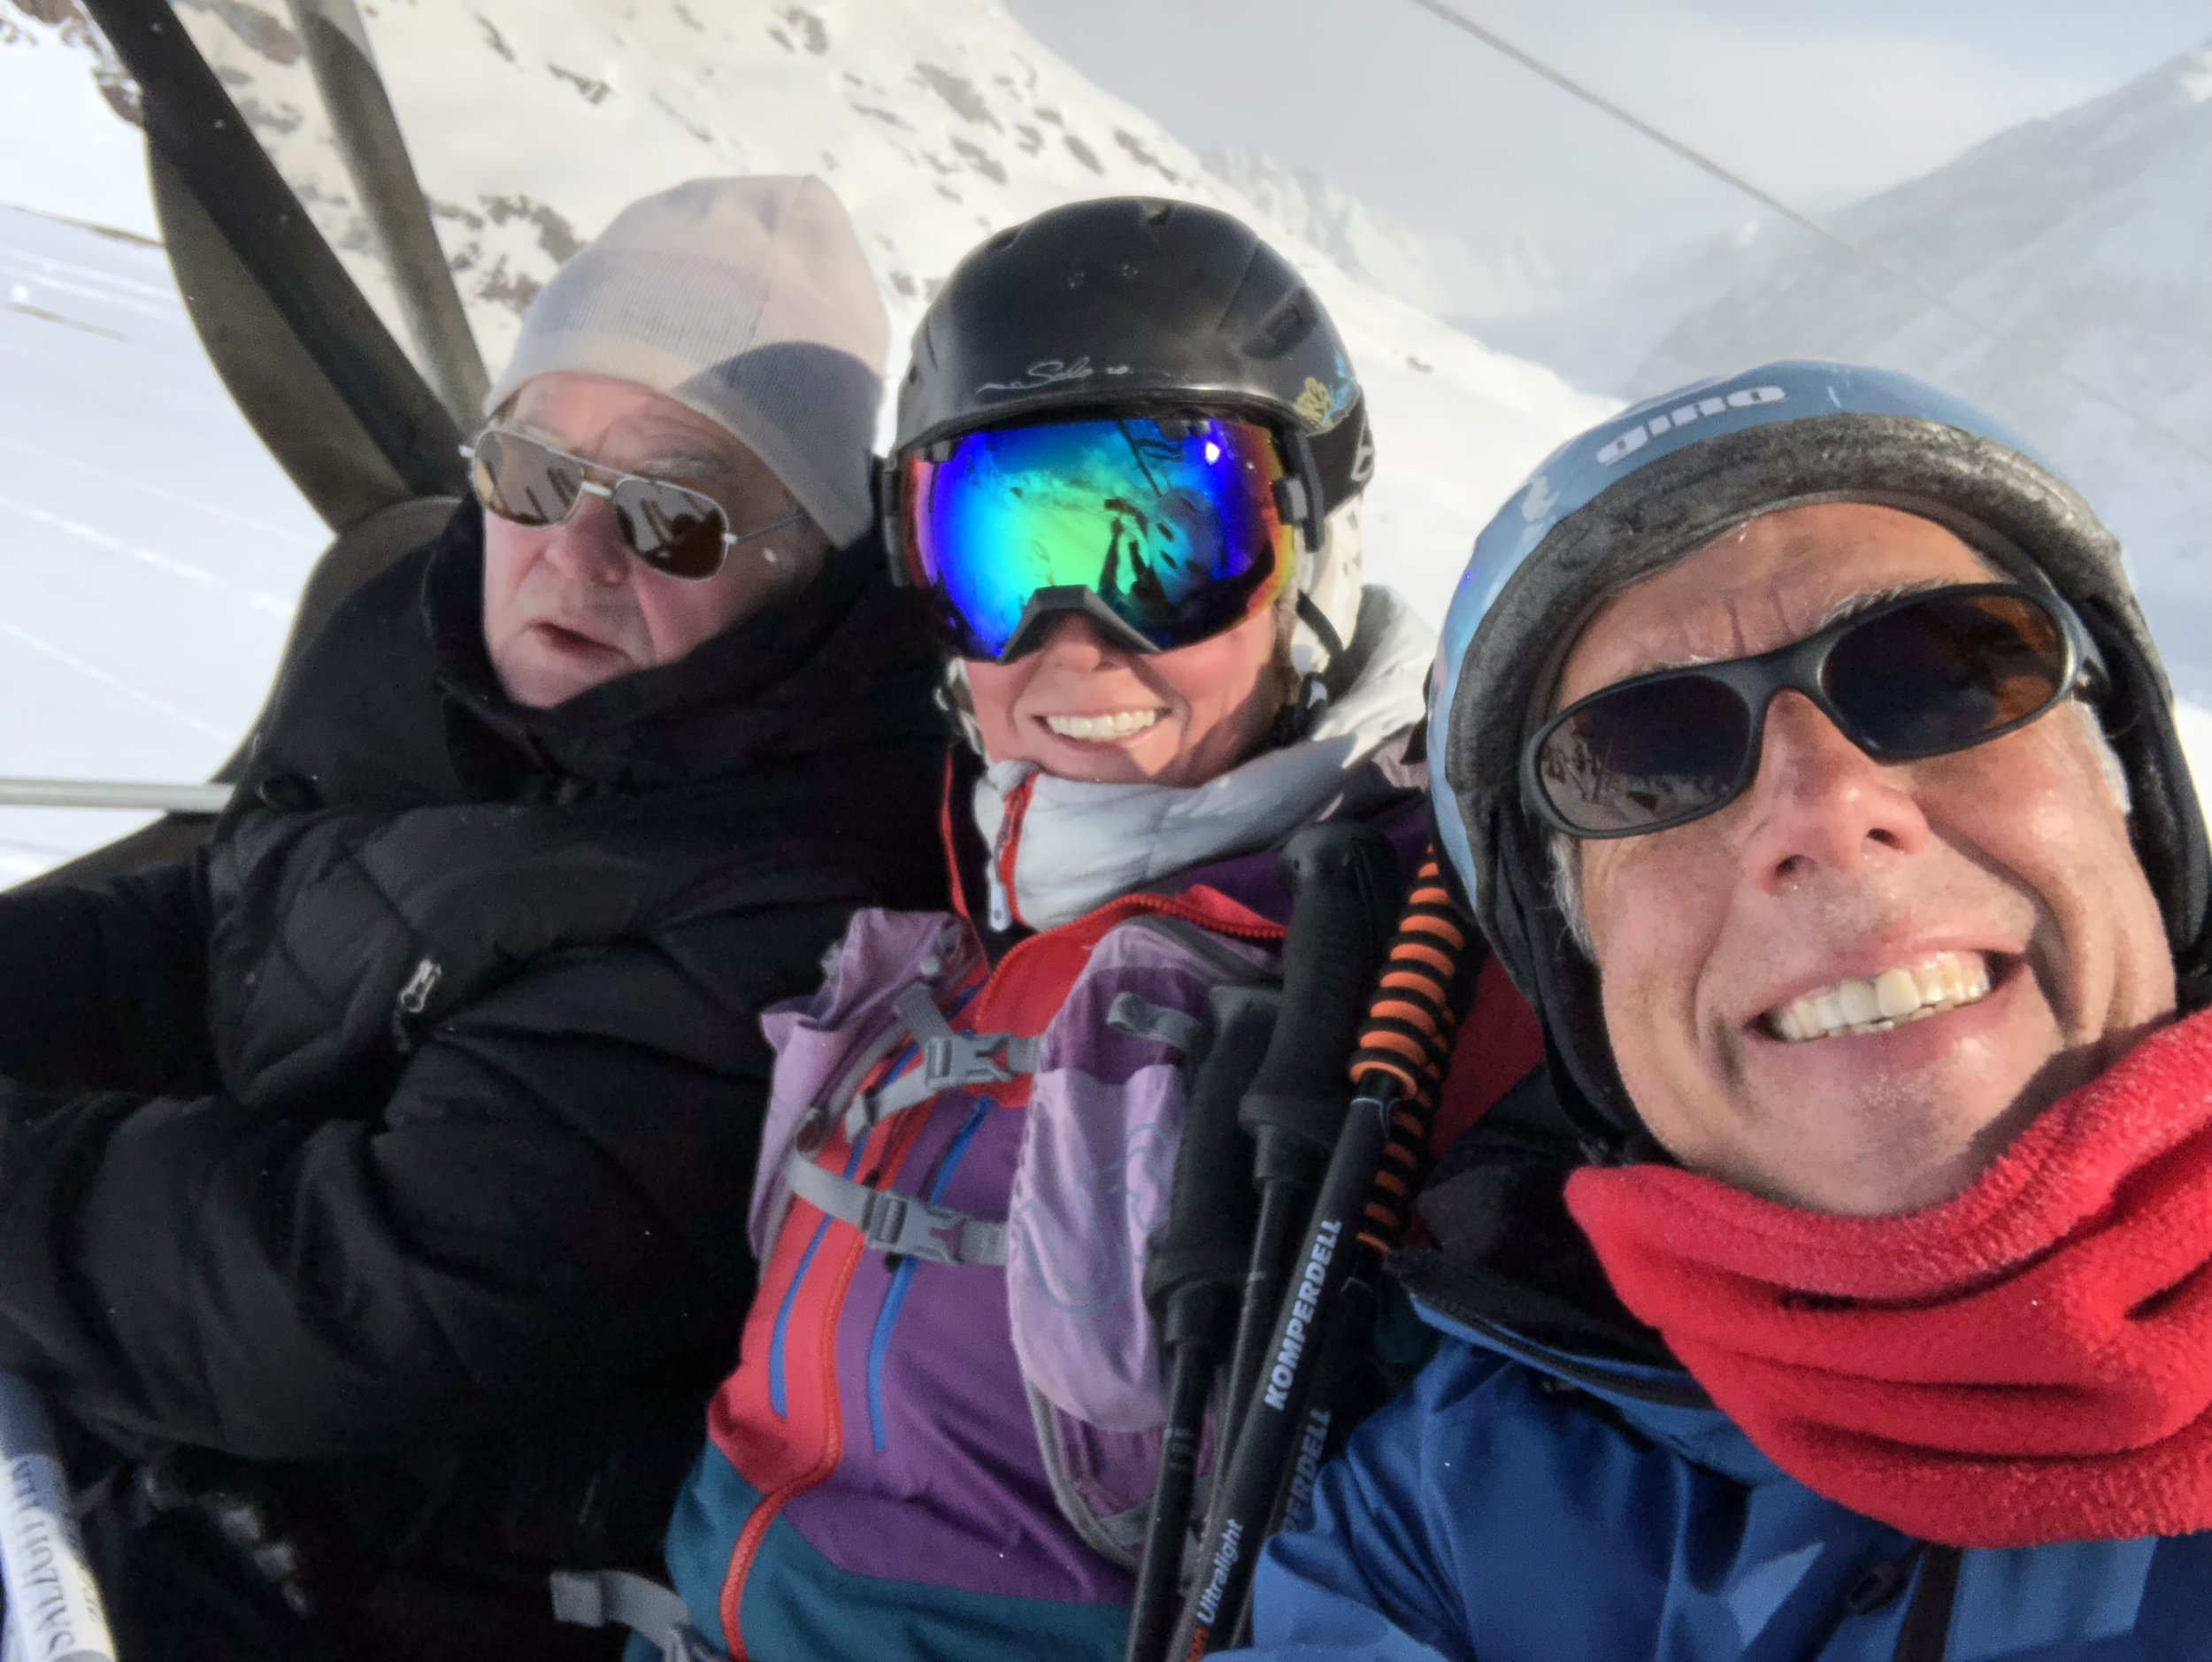 And skiing with dad!